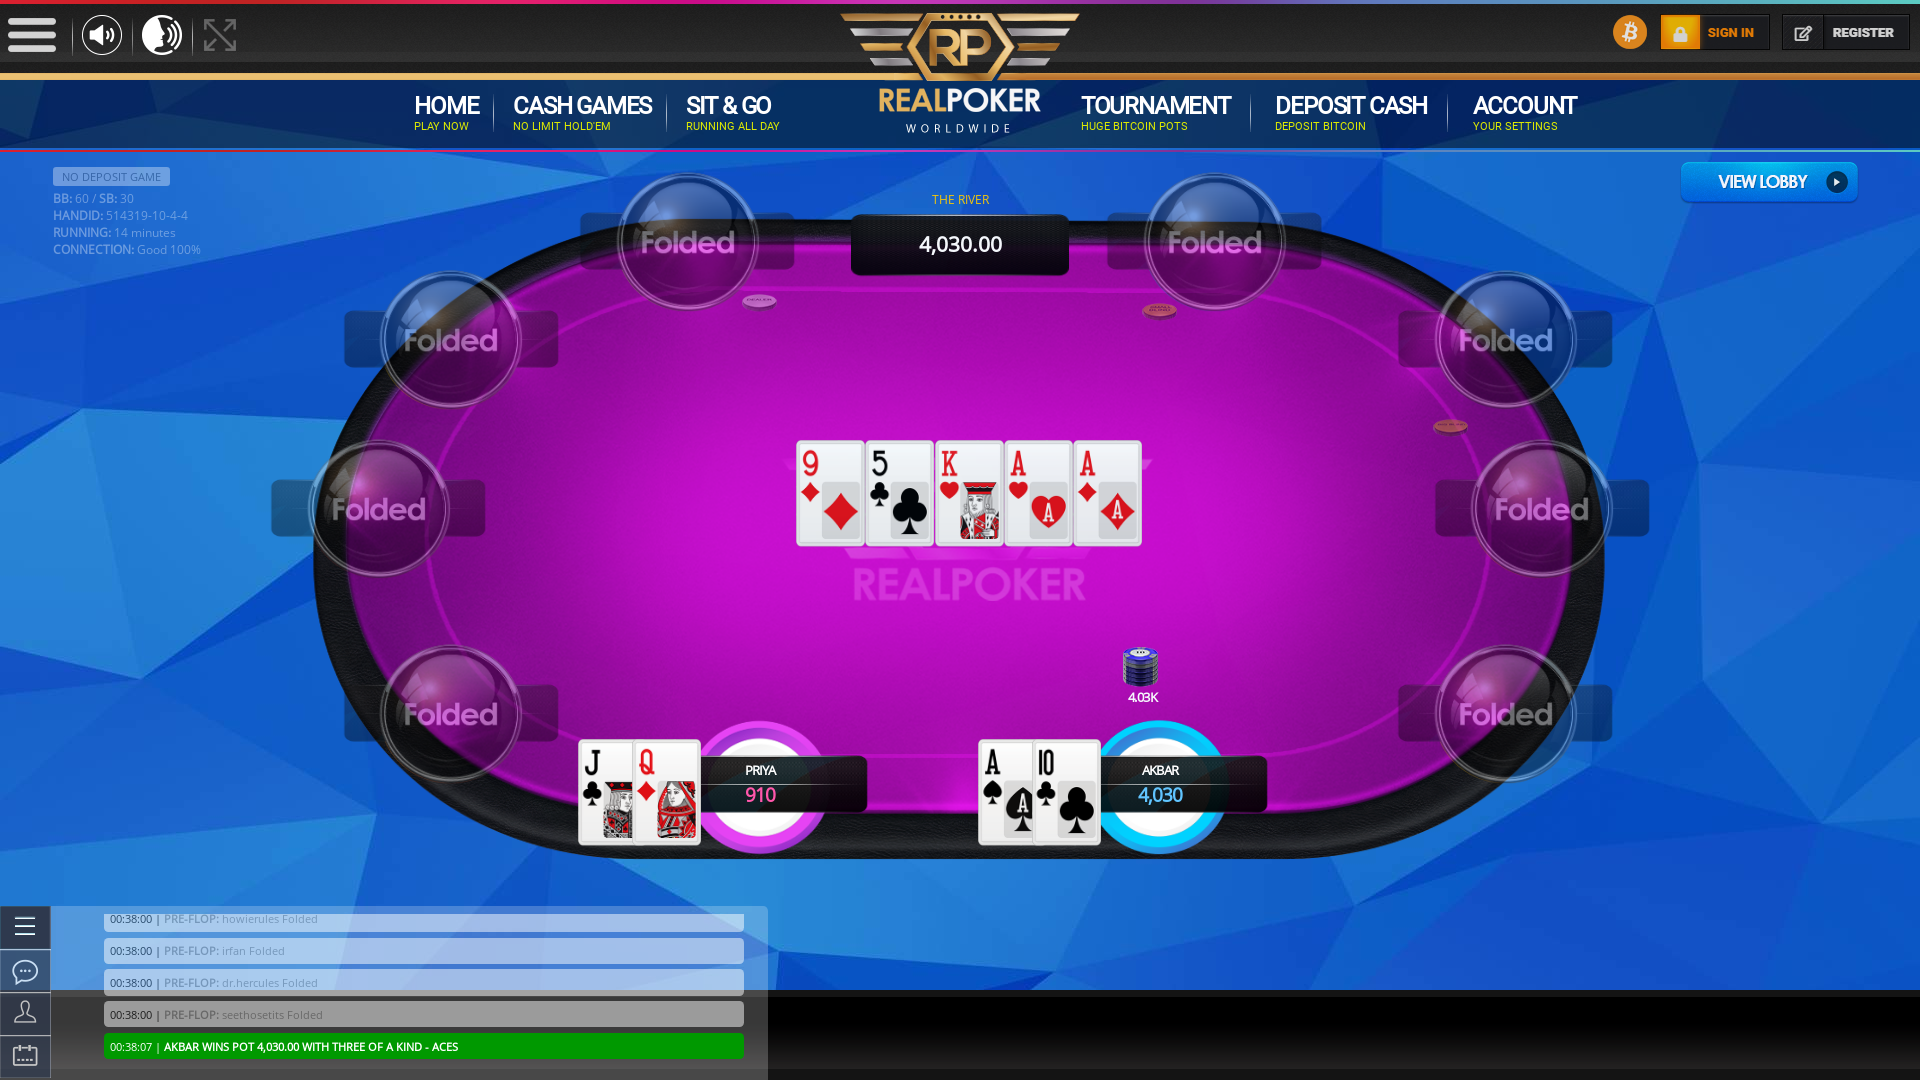 poker on a 10 player table in the 14th minute